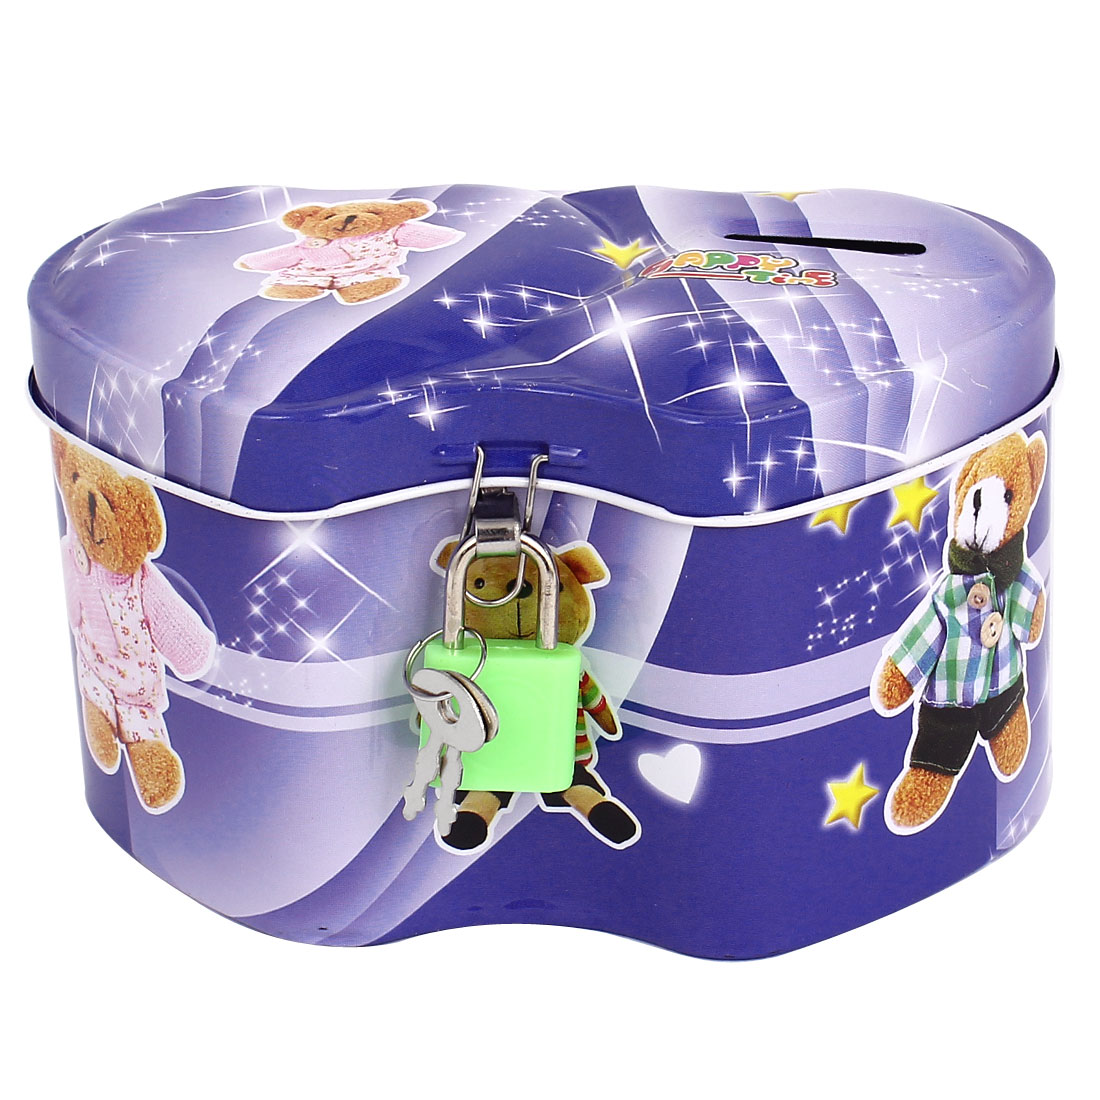 Household Children Cartoon Animal Printed Metal Two Hearts Designed Piggy Bank Money Saving Box Blue w Padlock